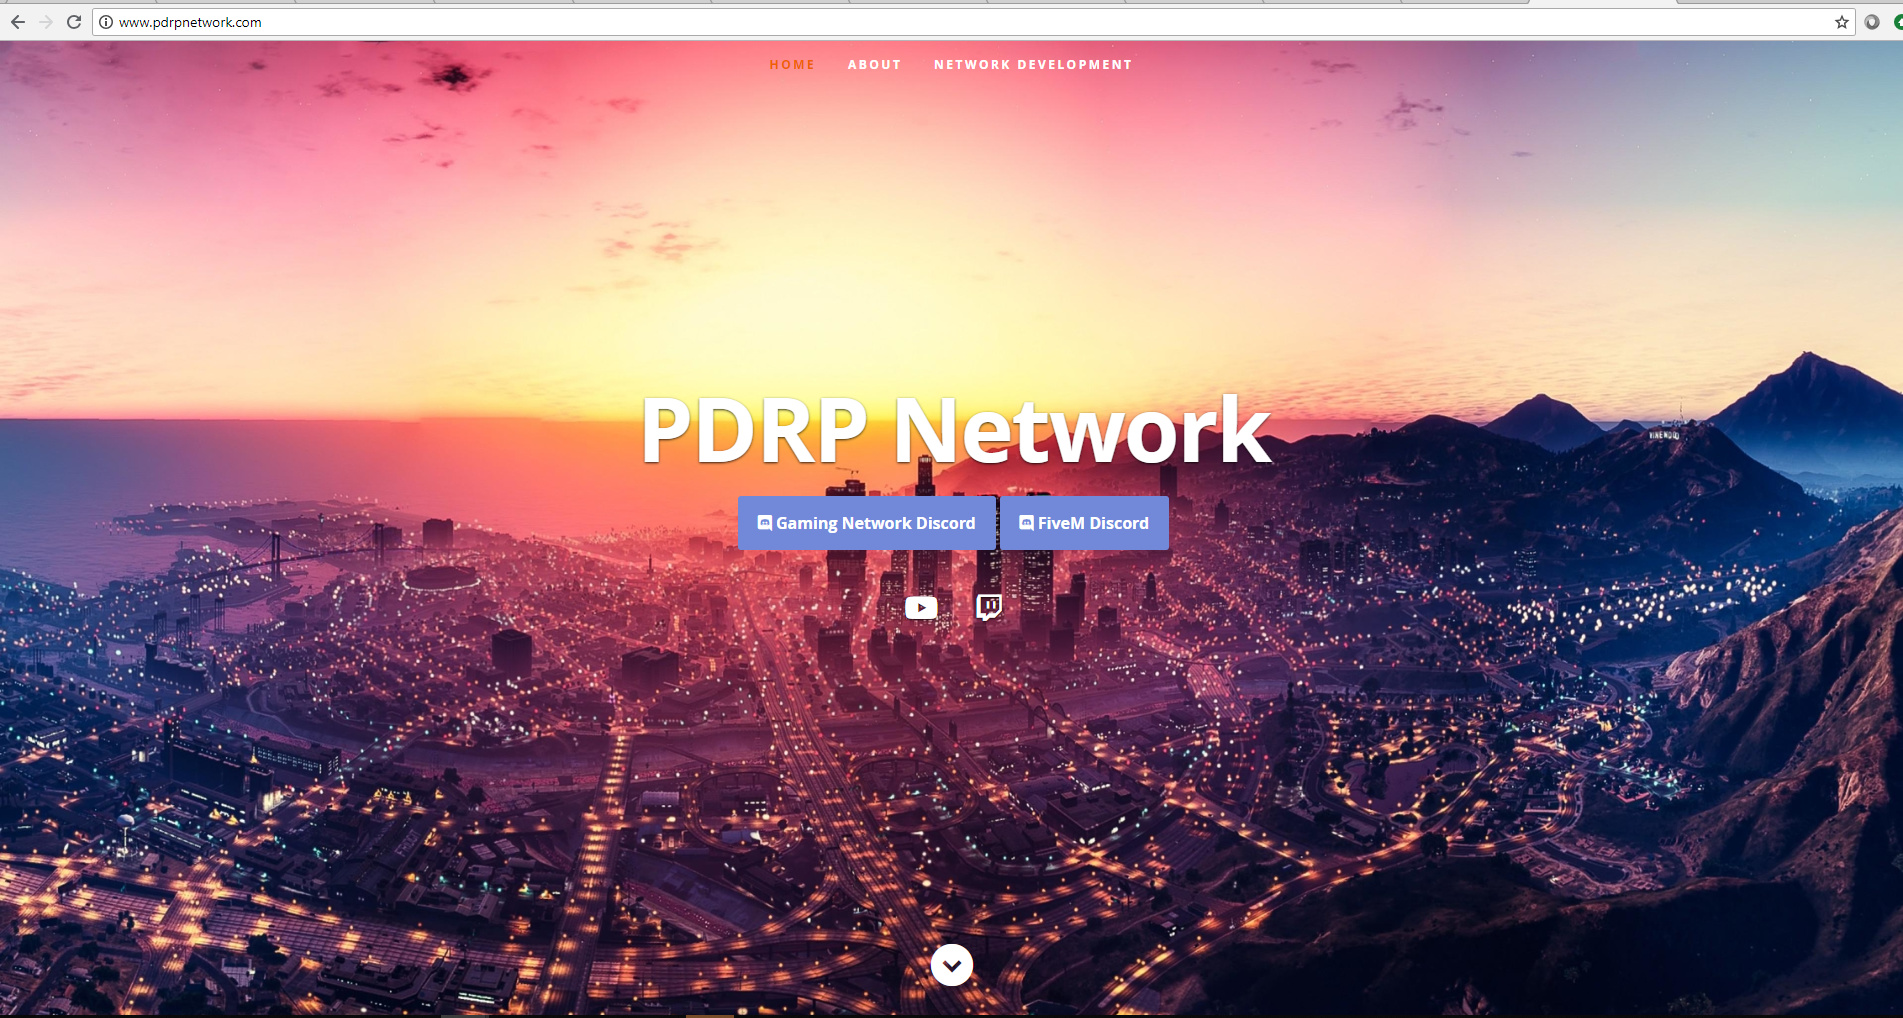 PDRP Network | Custom Cad | Coming soon a Mounted Police Unit